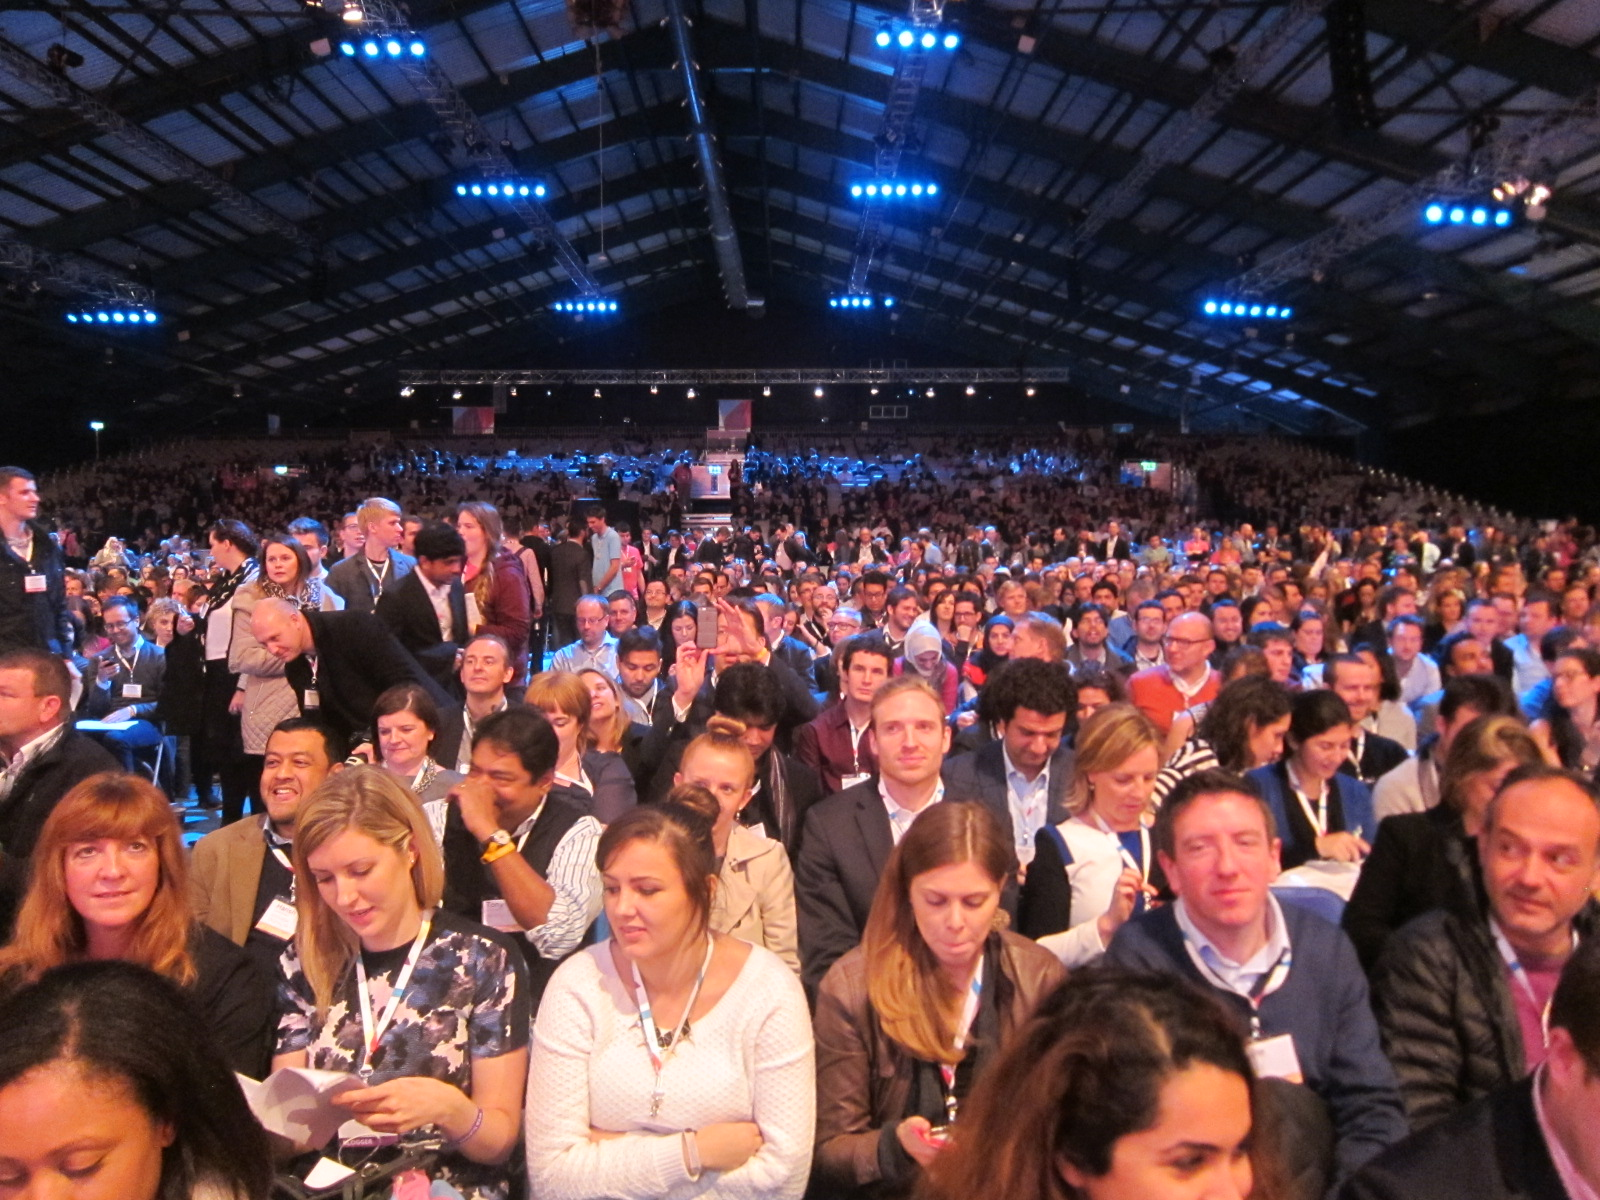 22,000 attended the 2014 Web Summit in Dublin.